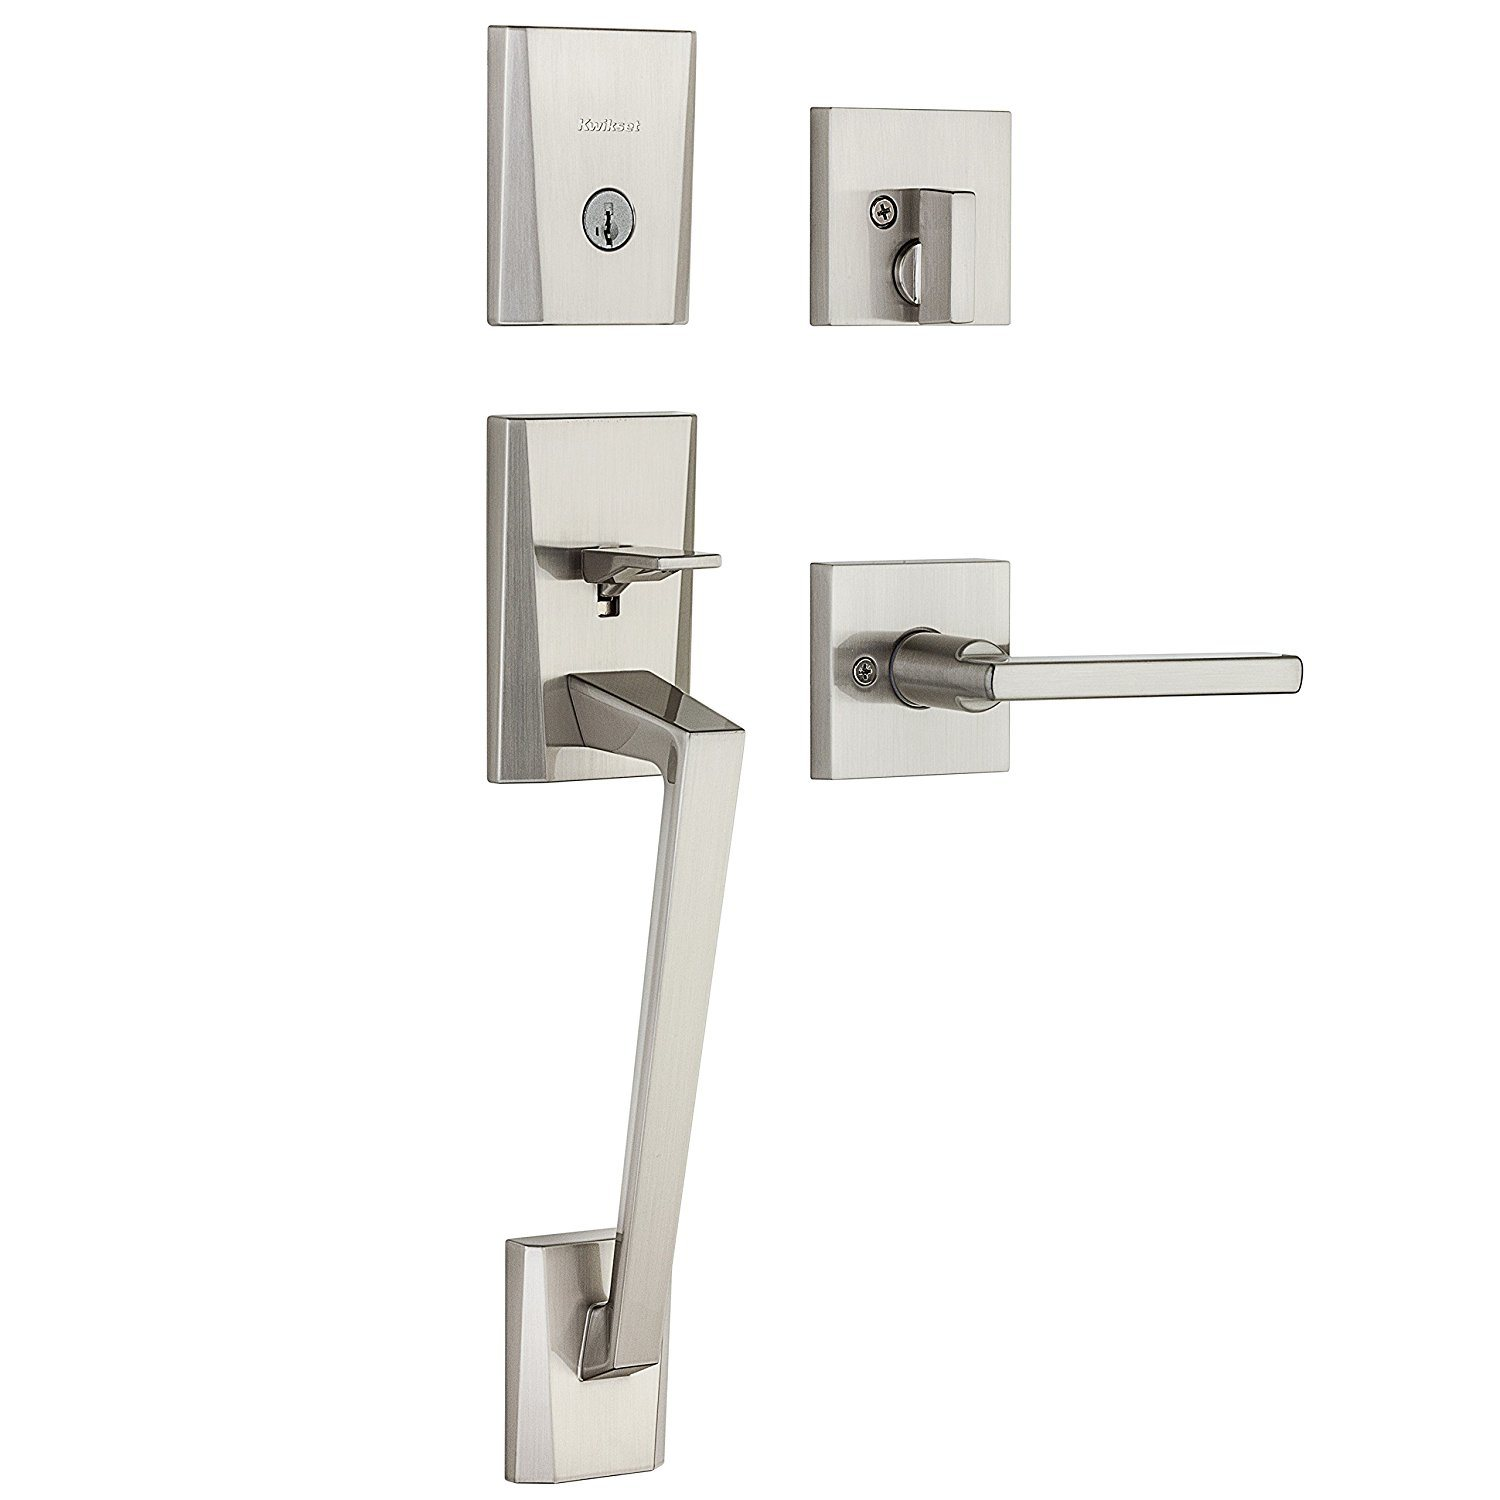 High Security Chrom Handle Set Door Lock for Entrance Lock